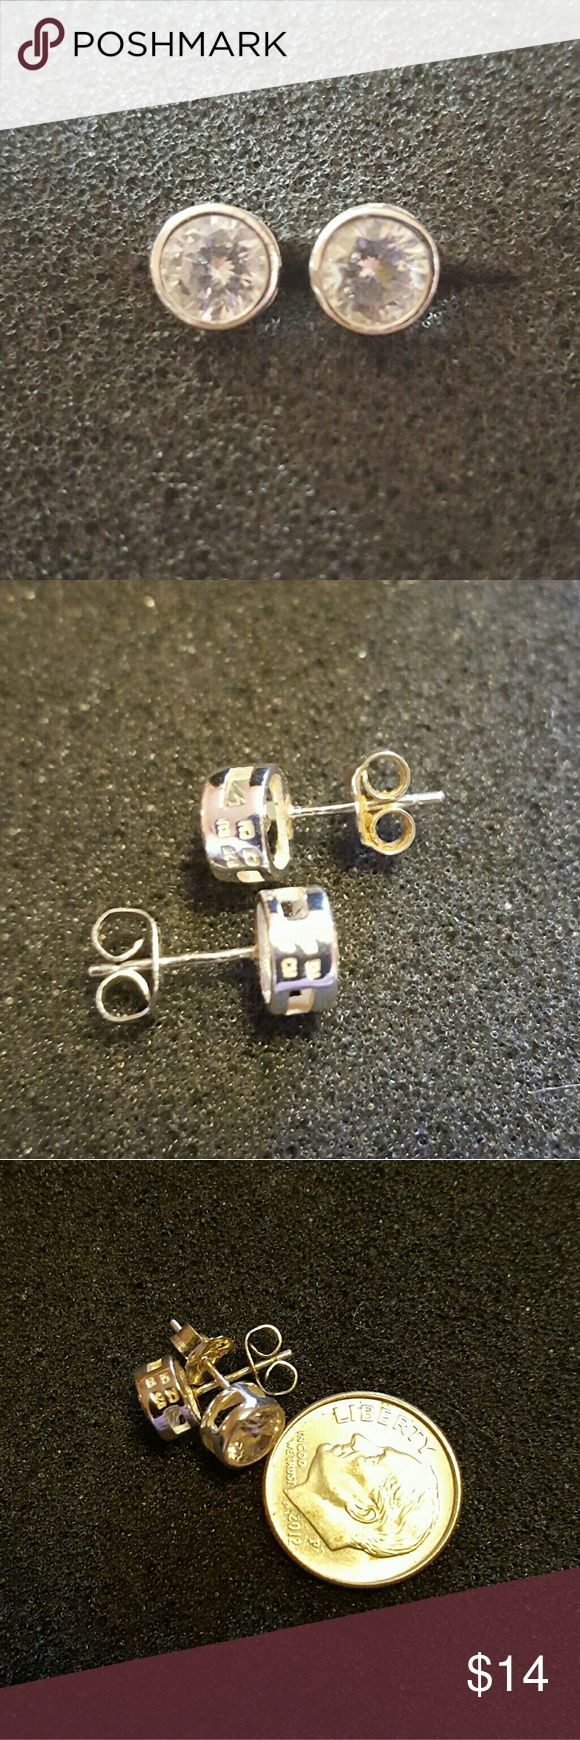 """Signed Sterling Silver Bezel Set CZ Earrings For your consideration is a pair of signed (side of mountings) 925 SU CZ CH sterling silver bezel set brilliant cubic zirconia pierced post earrings. Cubic zirconia measures approximately 3/16"""" in diameter. *One of the backs is not the original* Thank you. Vintage  Jewelry Earrings"""